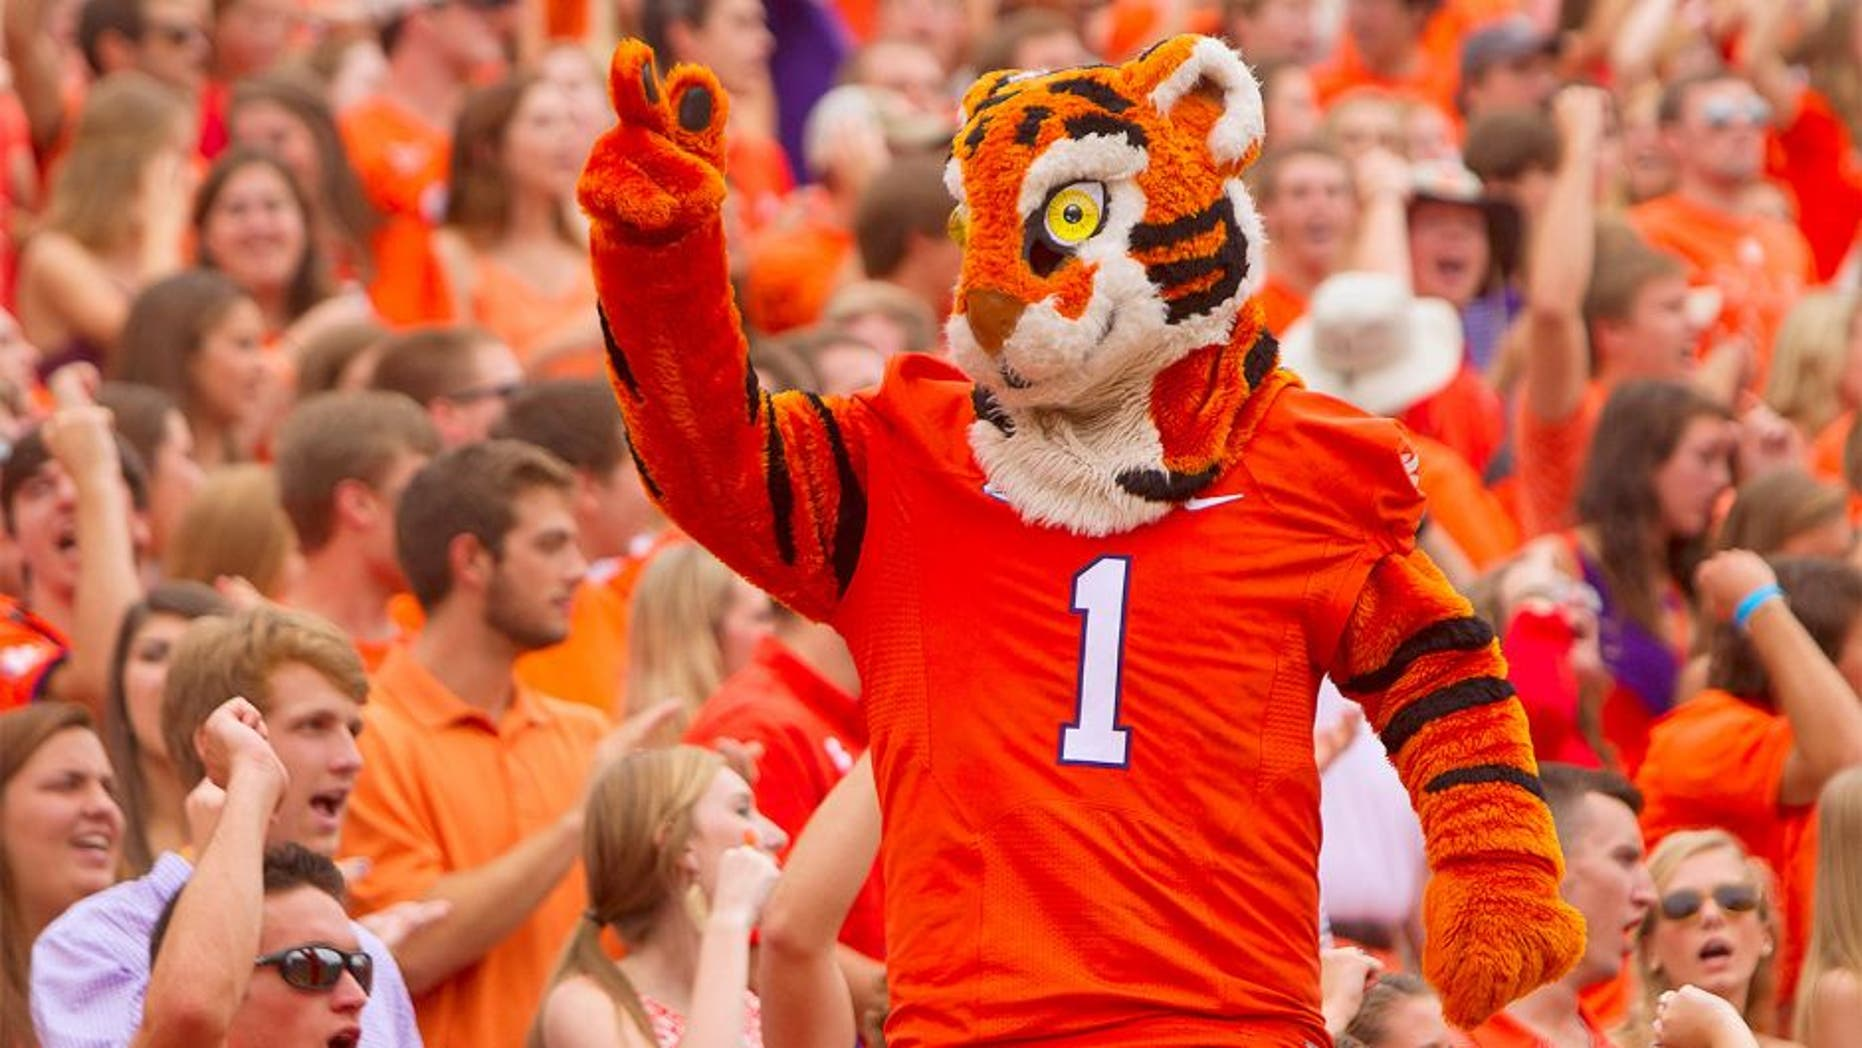 Sep 12, 2015; Clemson, SC, USA; Clemson Tigers mascot during the first quarter against the Appalachian State Mountaineers at Clemson Memorial Stadium. Mandatory Credit: Joshua S. Kelly-USA TODAY Sports